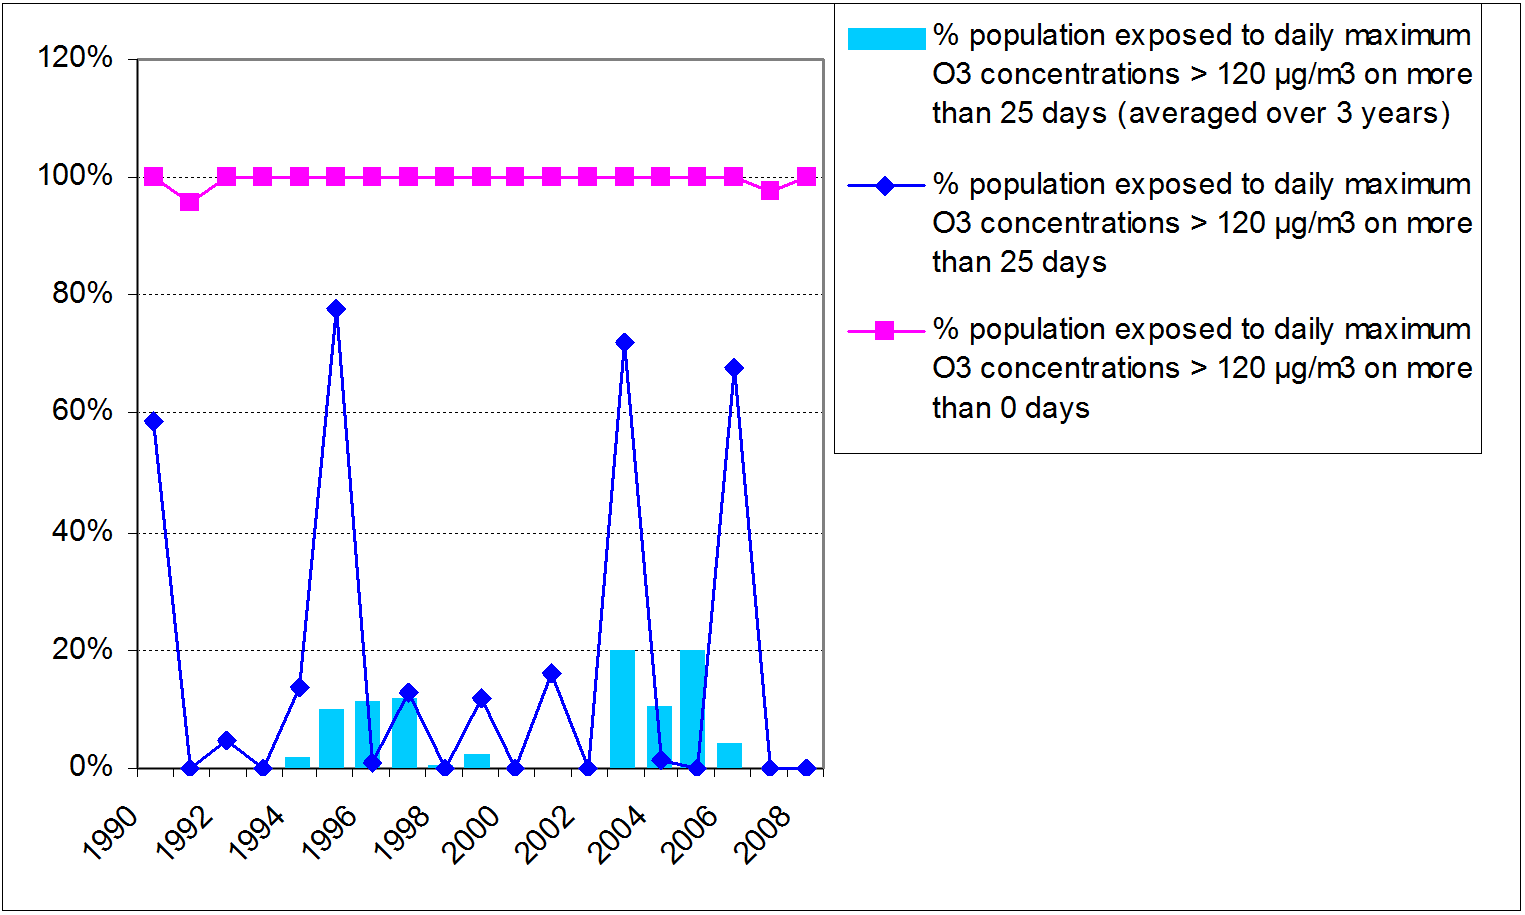 Figure 1: Percentage of the Belgian population potentially exposed to O3 concentrations